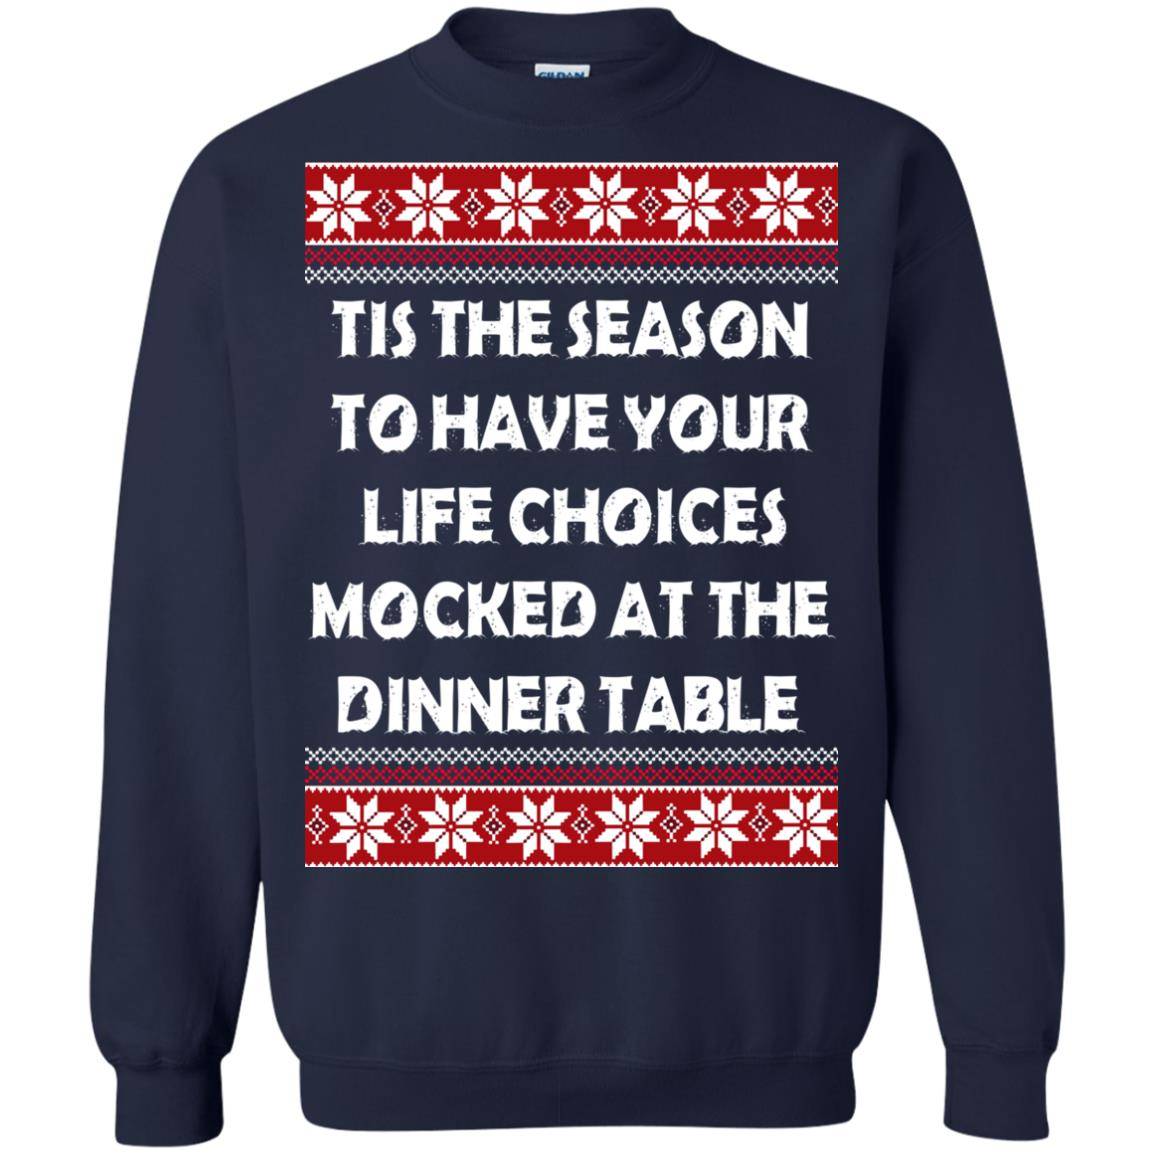 image 5897 - Tis The Season To Have Your Life Choices Mocked Christmas Sweater, Hoodie